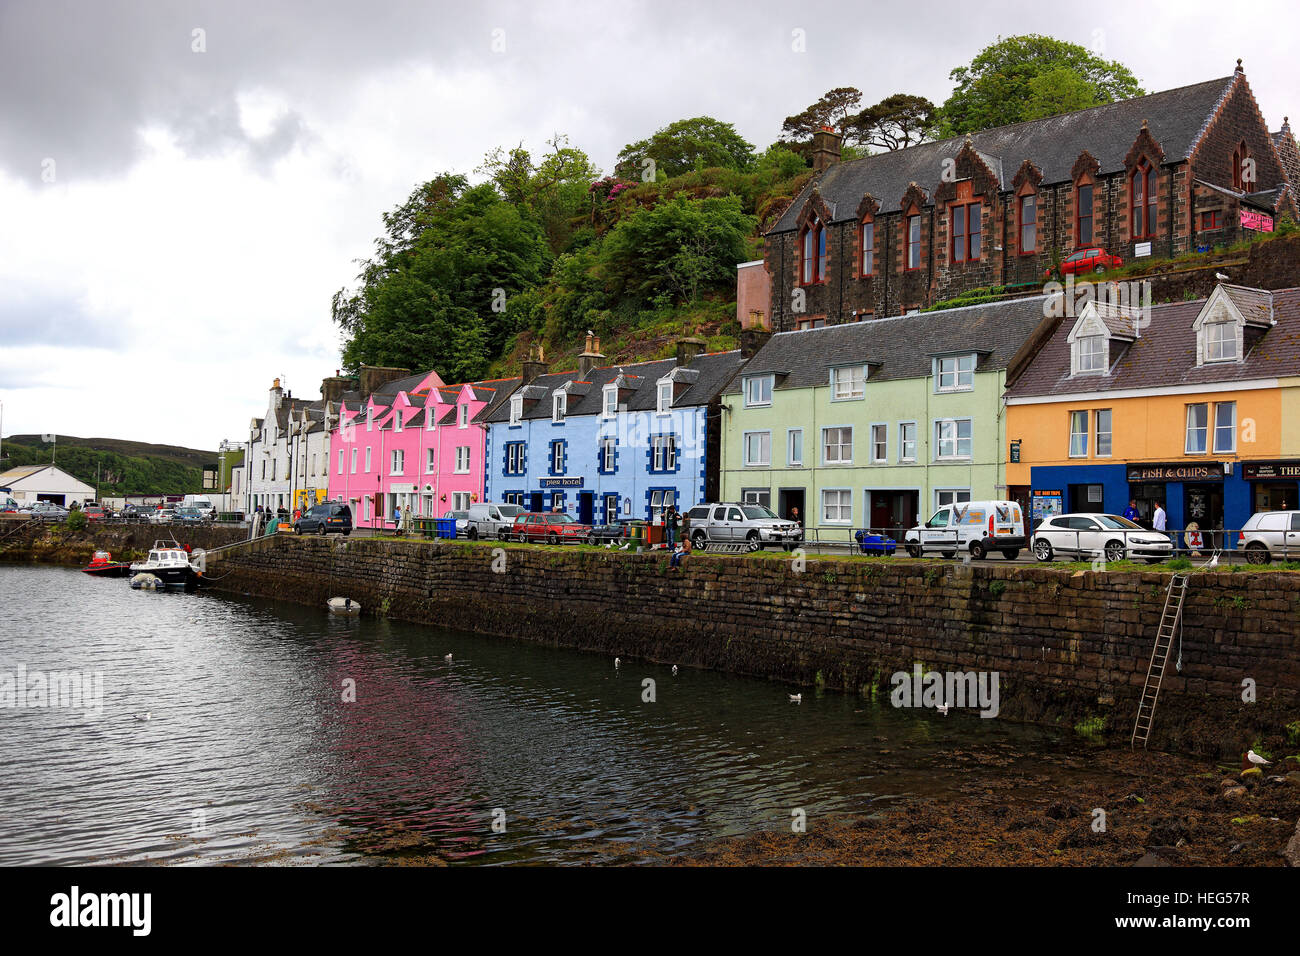 schottland sterben der inneren hebriden isle of skye stadt portree bunte h user am hafen. Black Bedroom Furniture Sets. Home Design Ideas